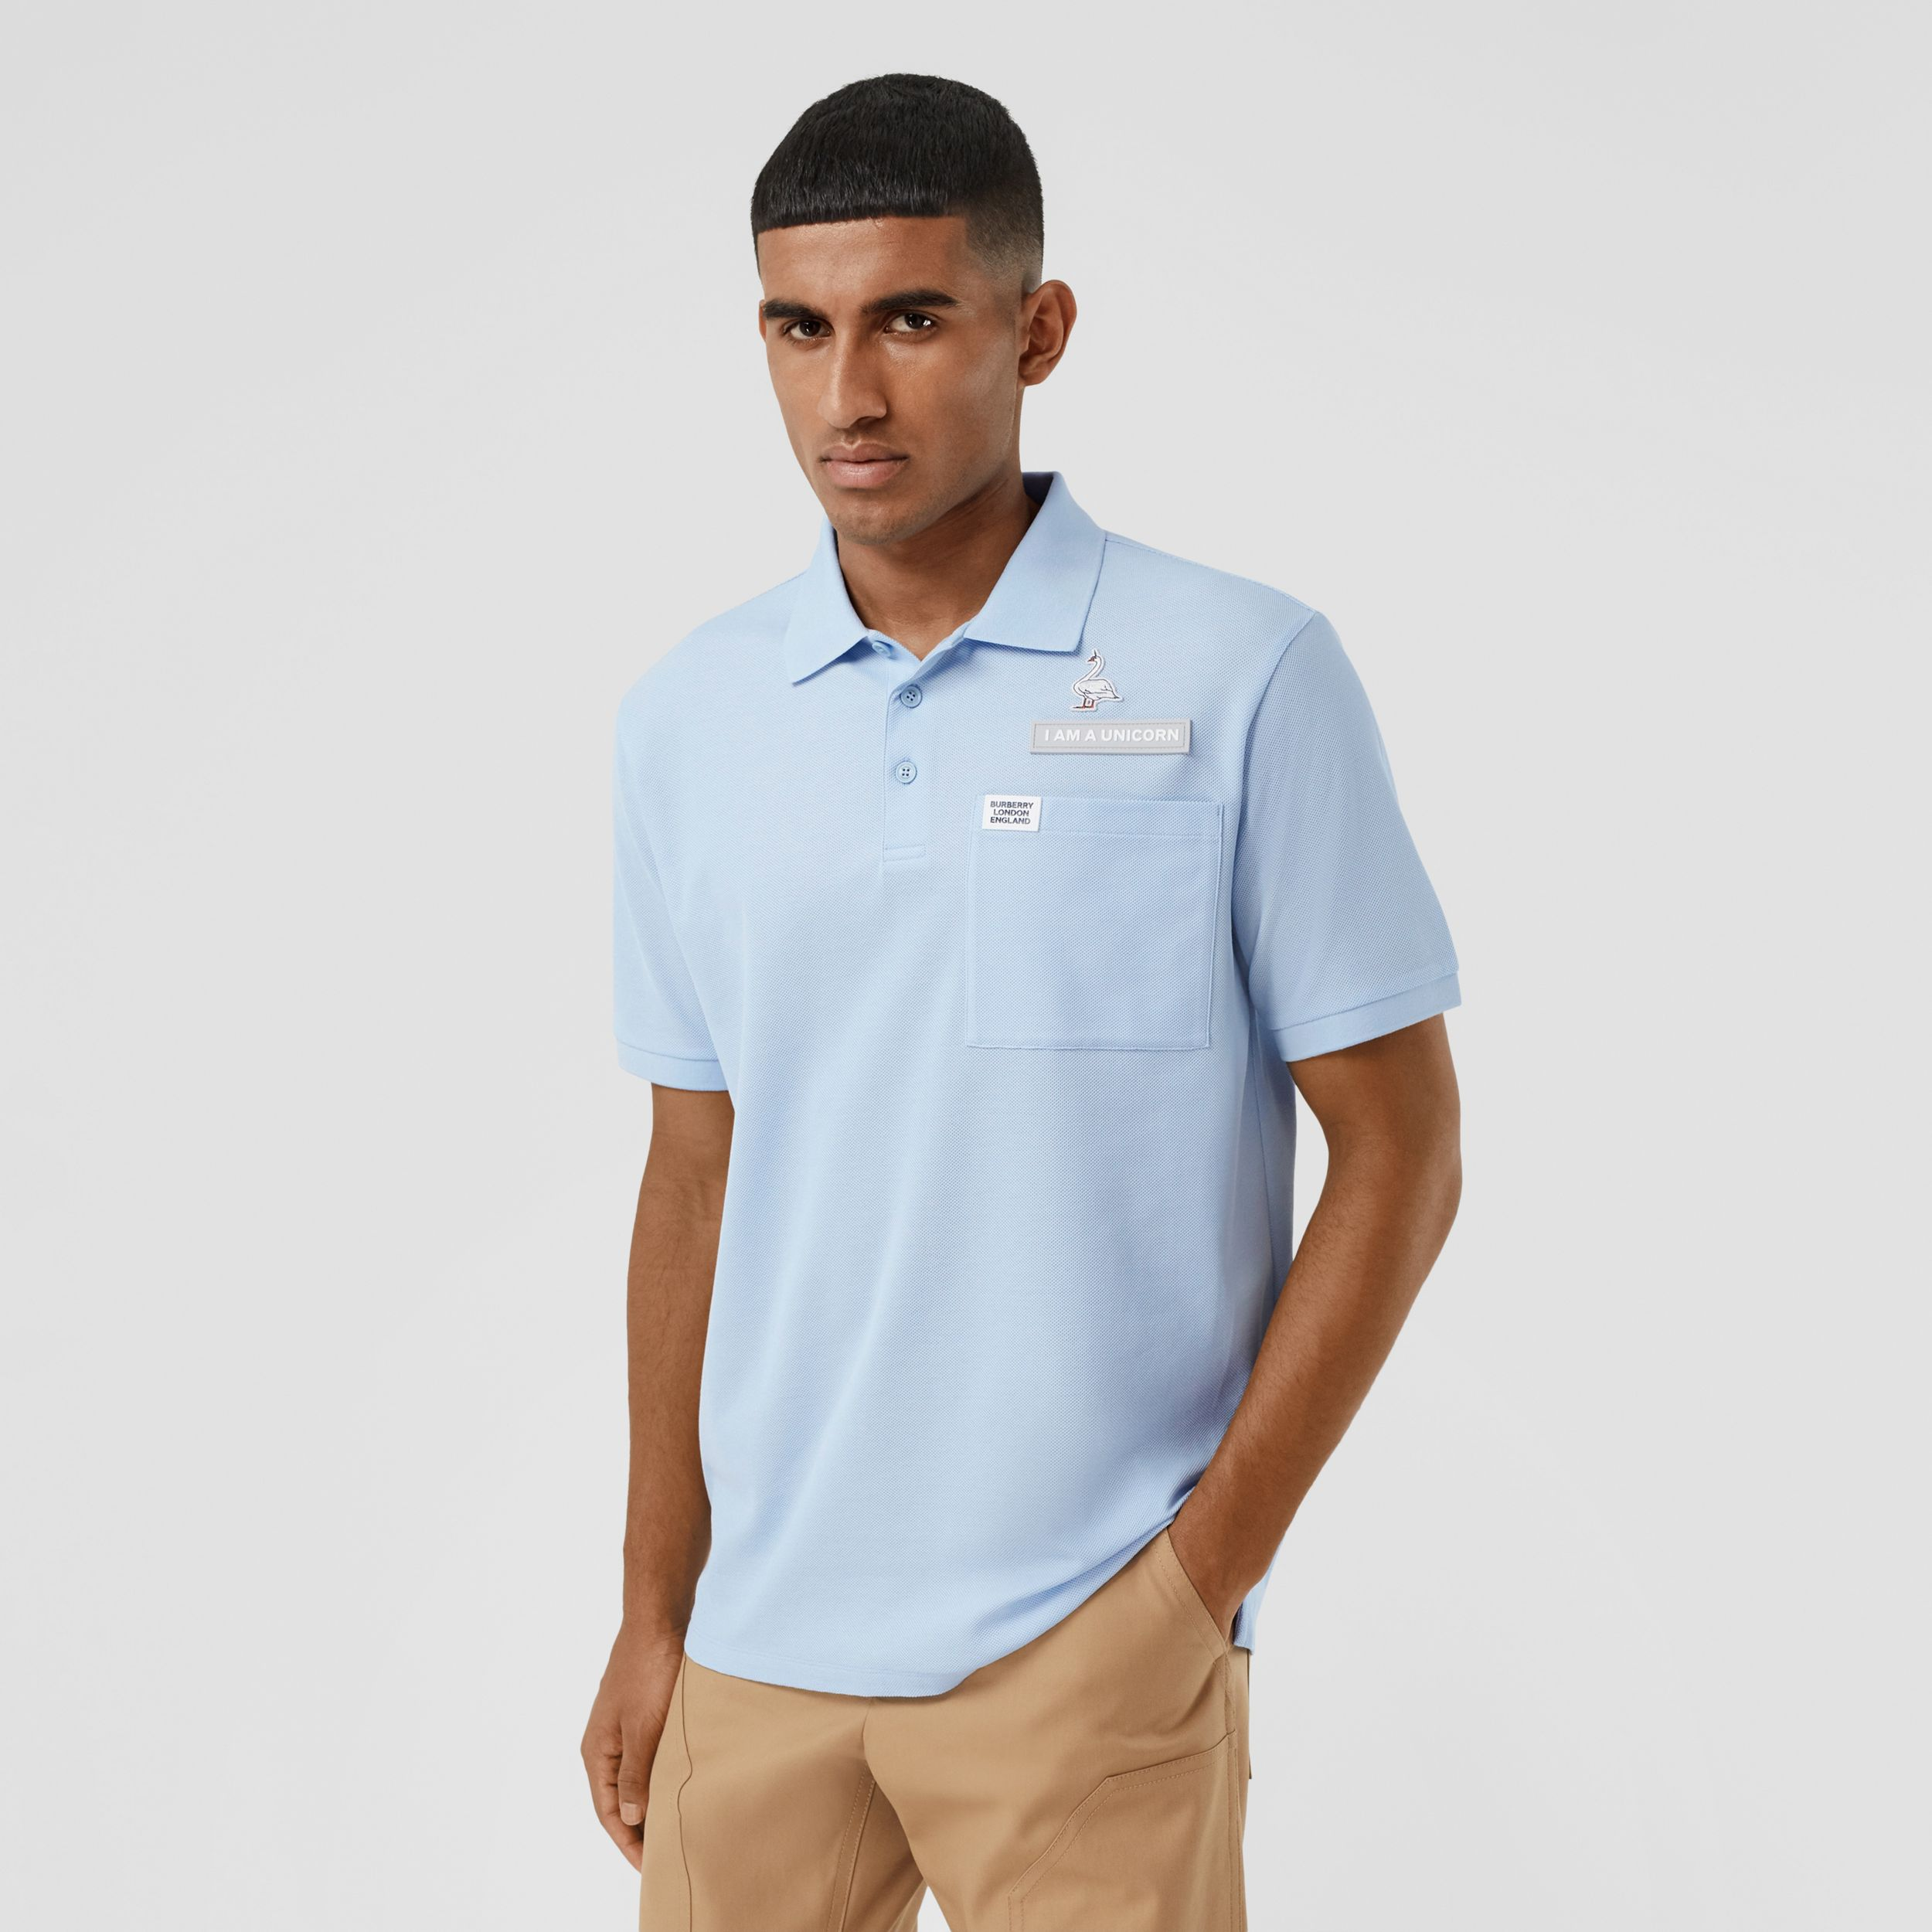 Swan and Slogan Appliqué Cotton Polo Shirt in Pale Blue - Men | Burberry - 1